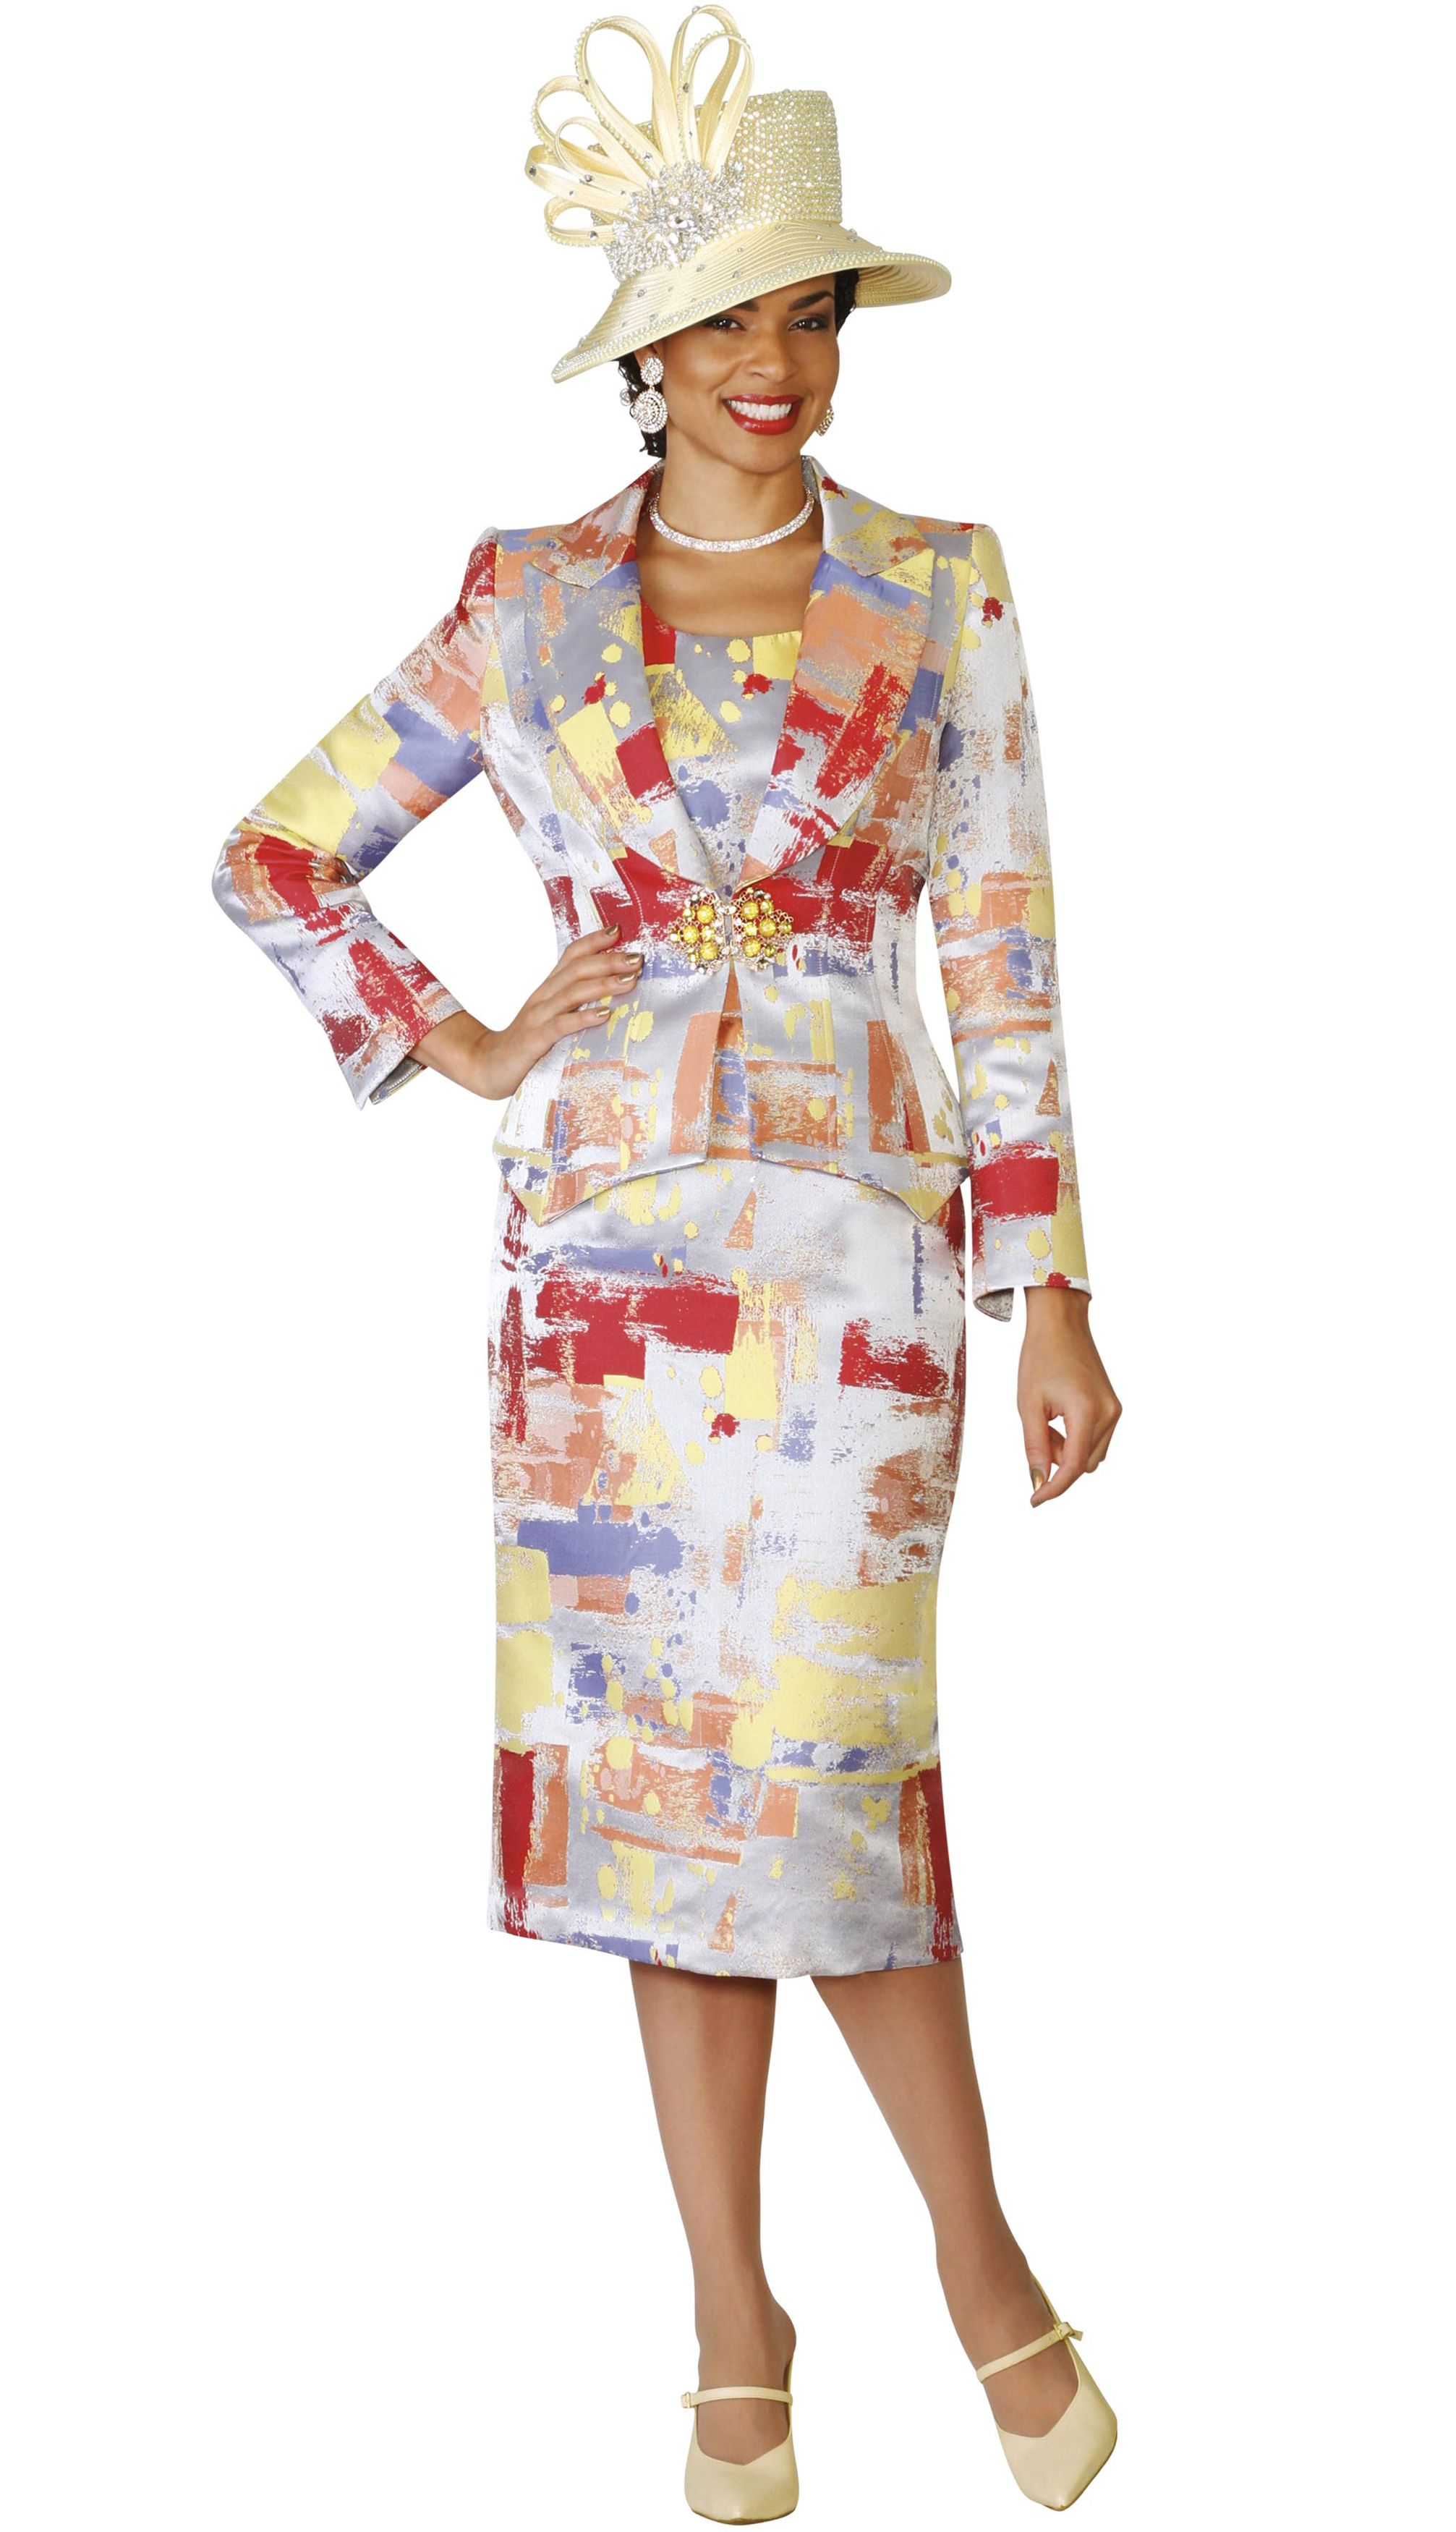 3075340aac7e52 Style Lily and Taylor 4084 3 Piece Womens Skirt Suit With Multi Color Print  Colors Silver With Multi Sizes 4 6 8 10 12 14 16 18 20 22 24